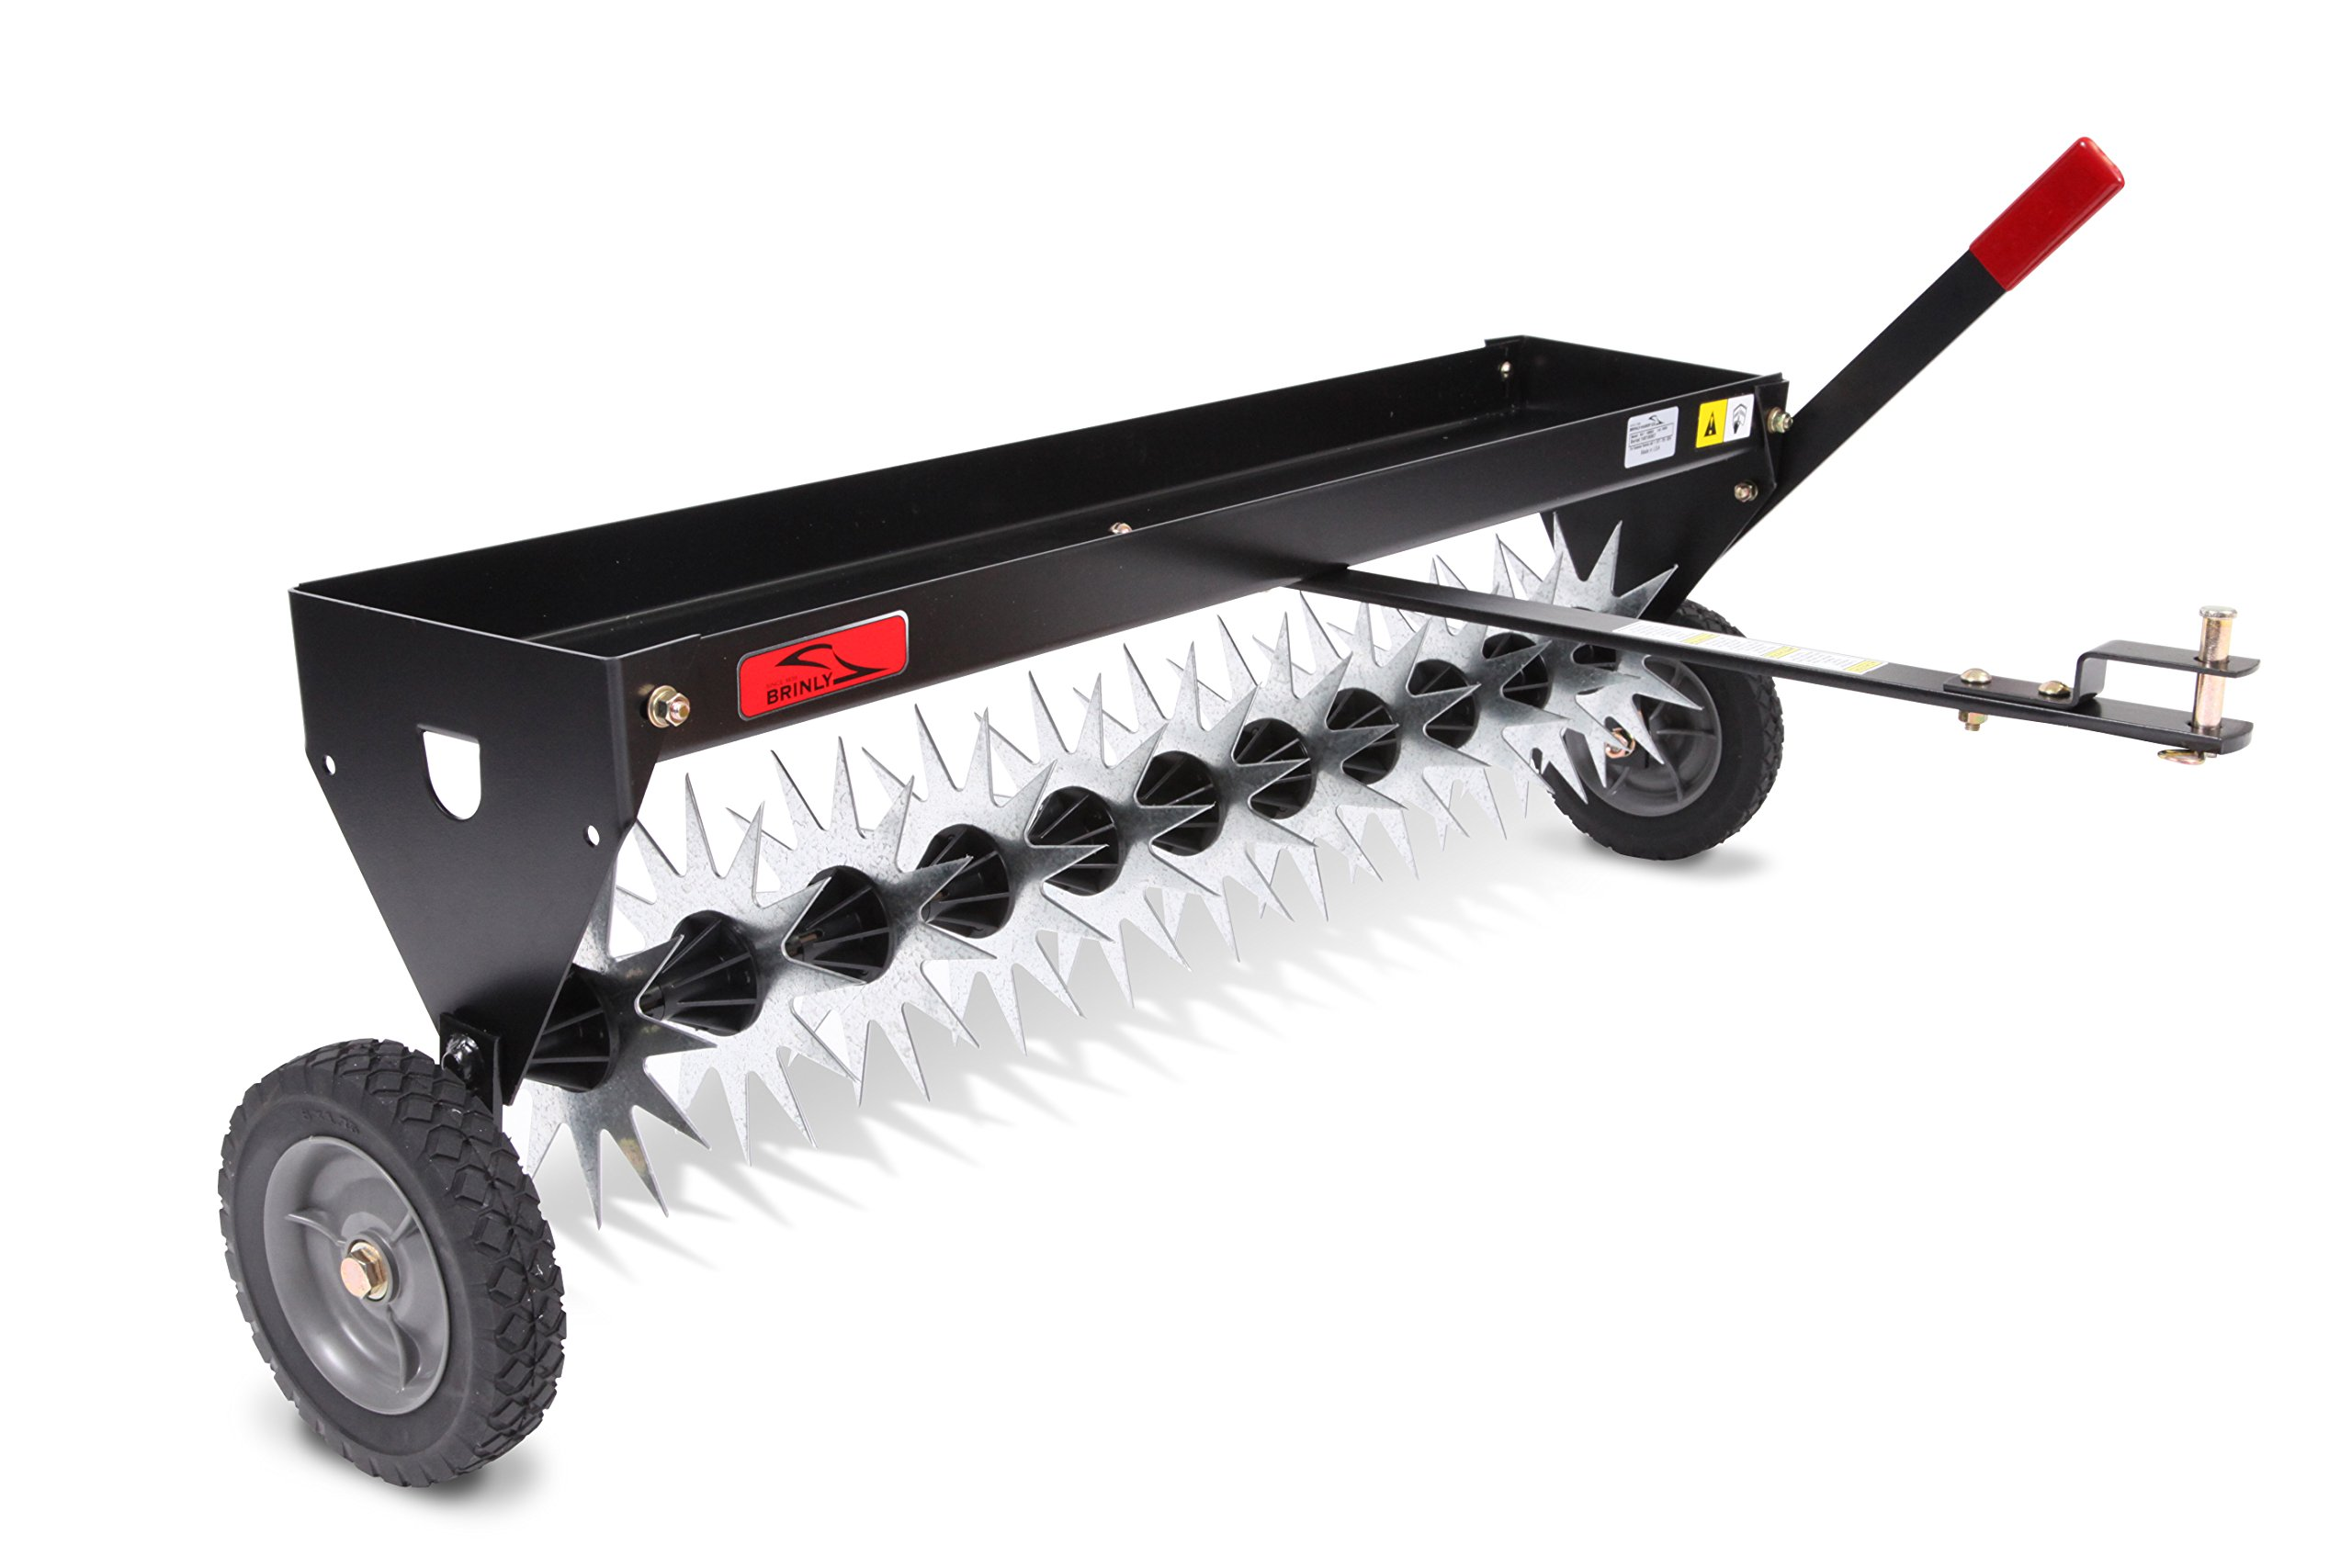 Brinly SAT-40BH Tow Behind Spike Aerator with Transport Wheels, 40-Inch by Brinly